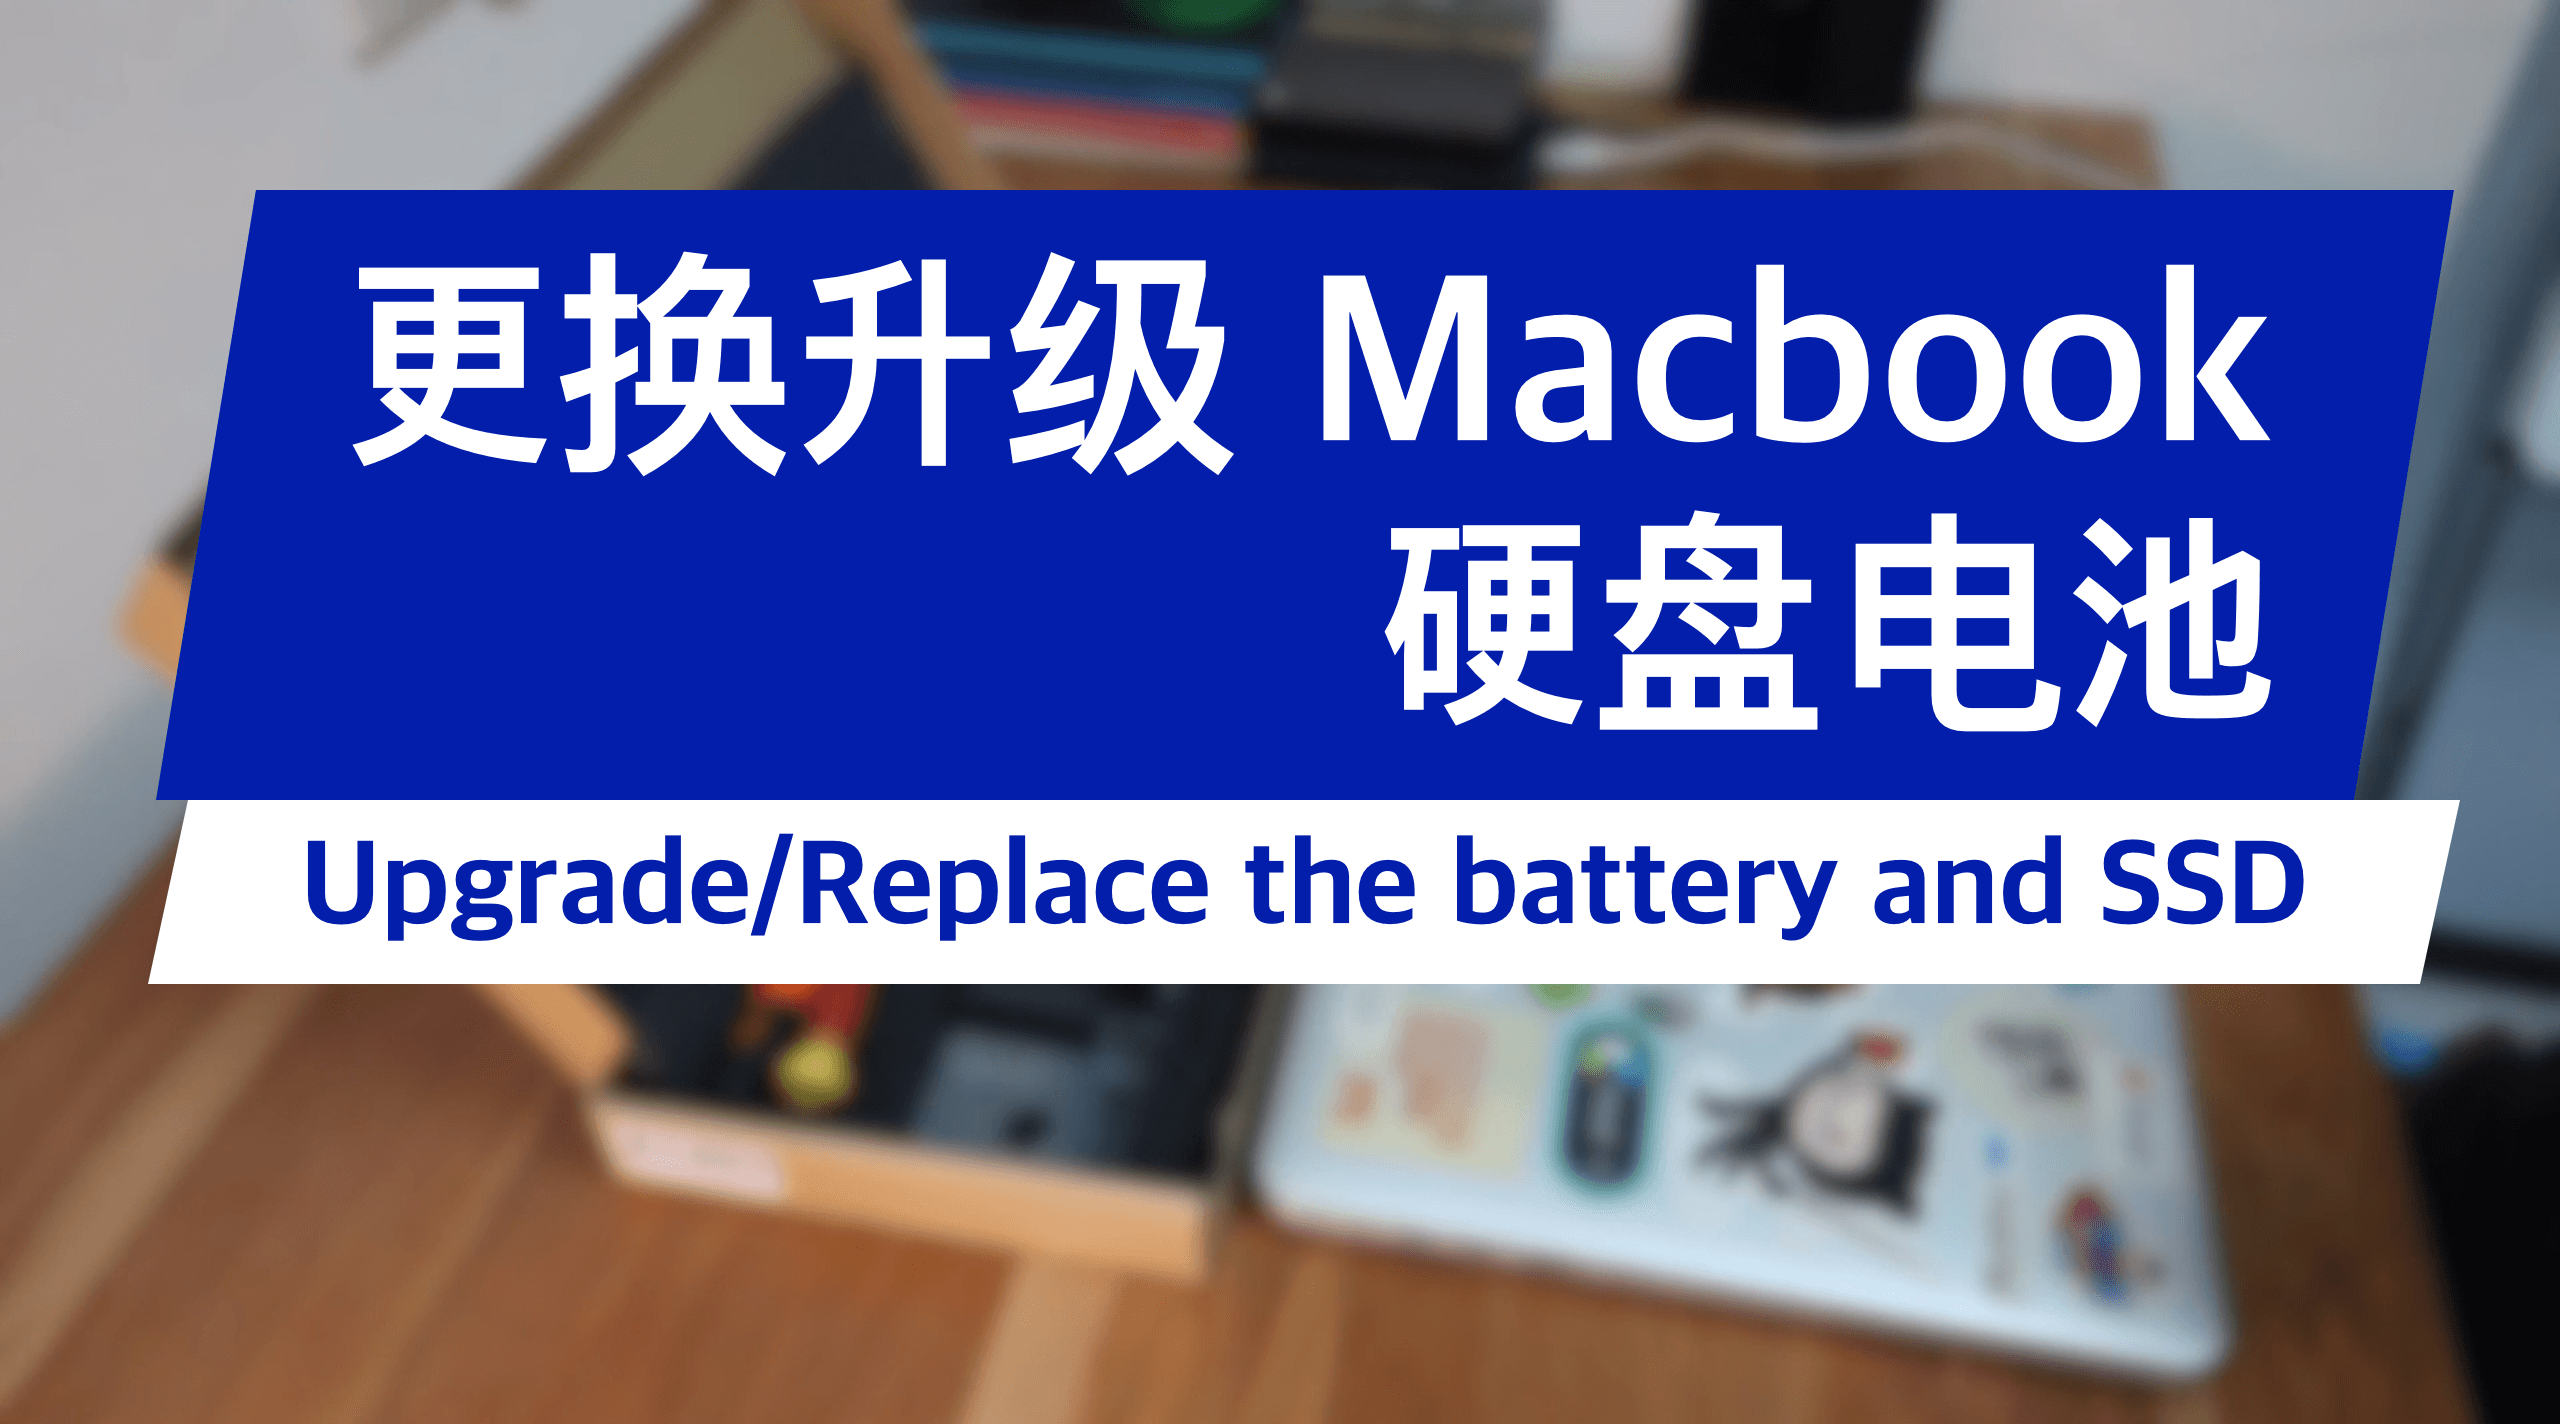 更换 Macbook 的电池和 SSD 硬盘 | Upgrade/Replace the battery and SSD of Macbook